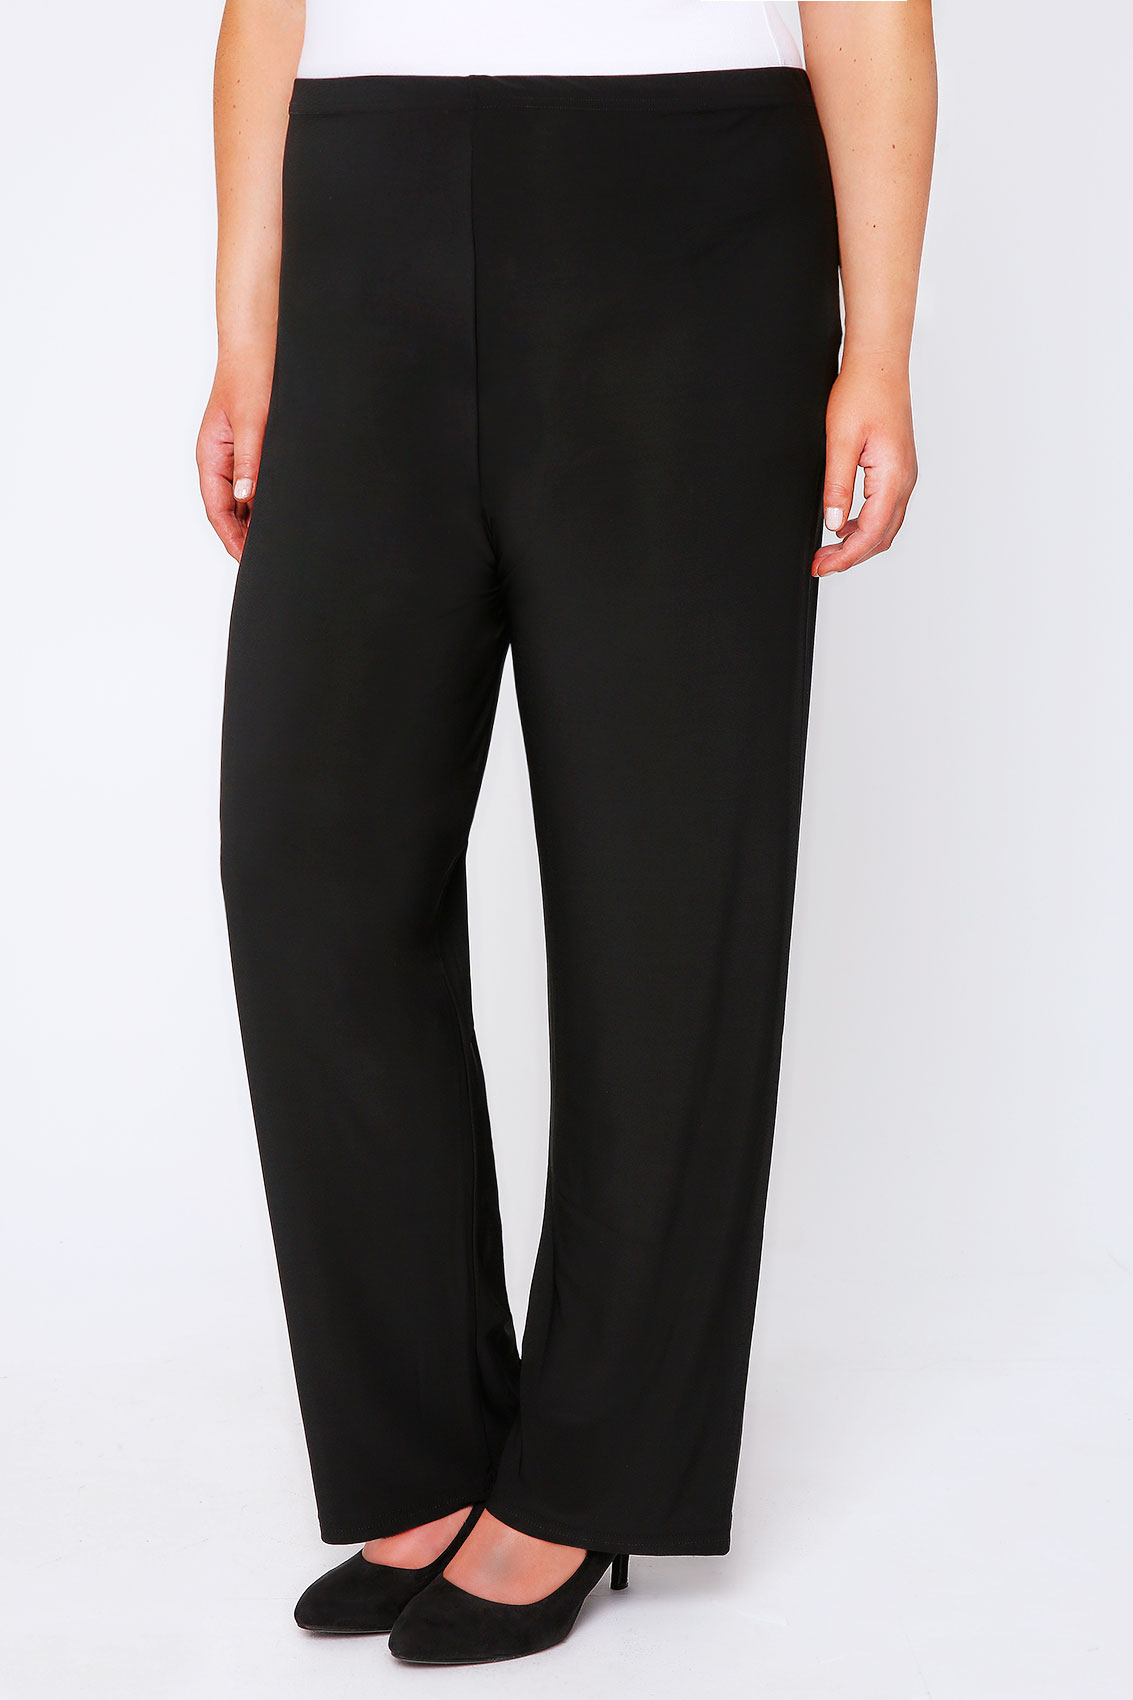 Shop a wide range of Trousers & leggings products and more at our online shop today. Menu Menu Button front wide leg trouser Save. £ Wallis Sahara palm joggers Save. Was £ Then £ Black wide leg trousers Save. Was £ Now £ Wallis Petite thin stripe trouser.